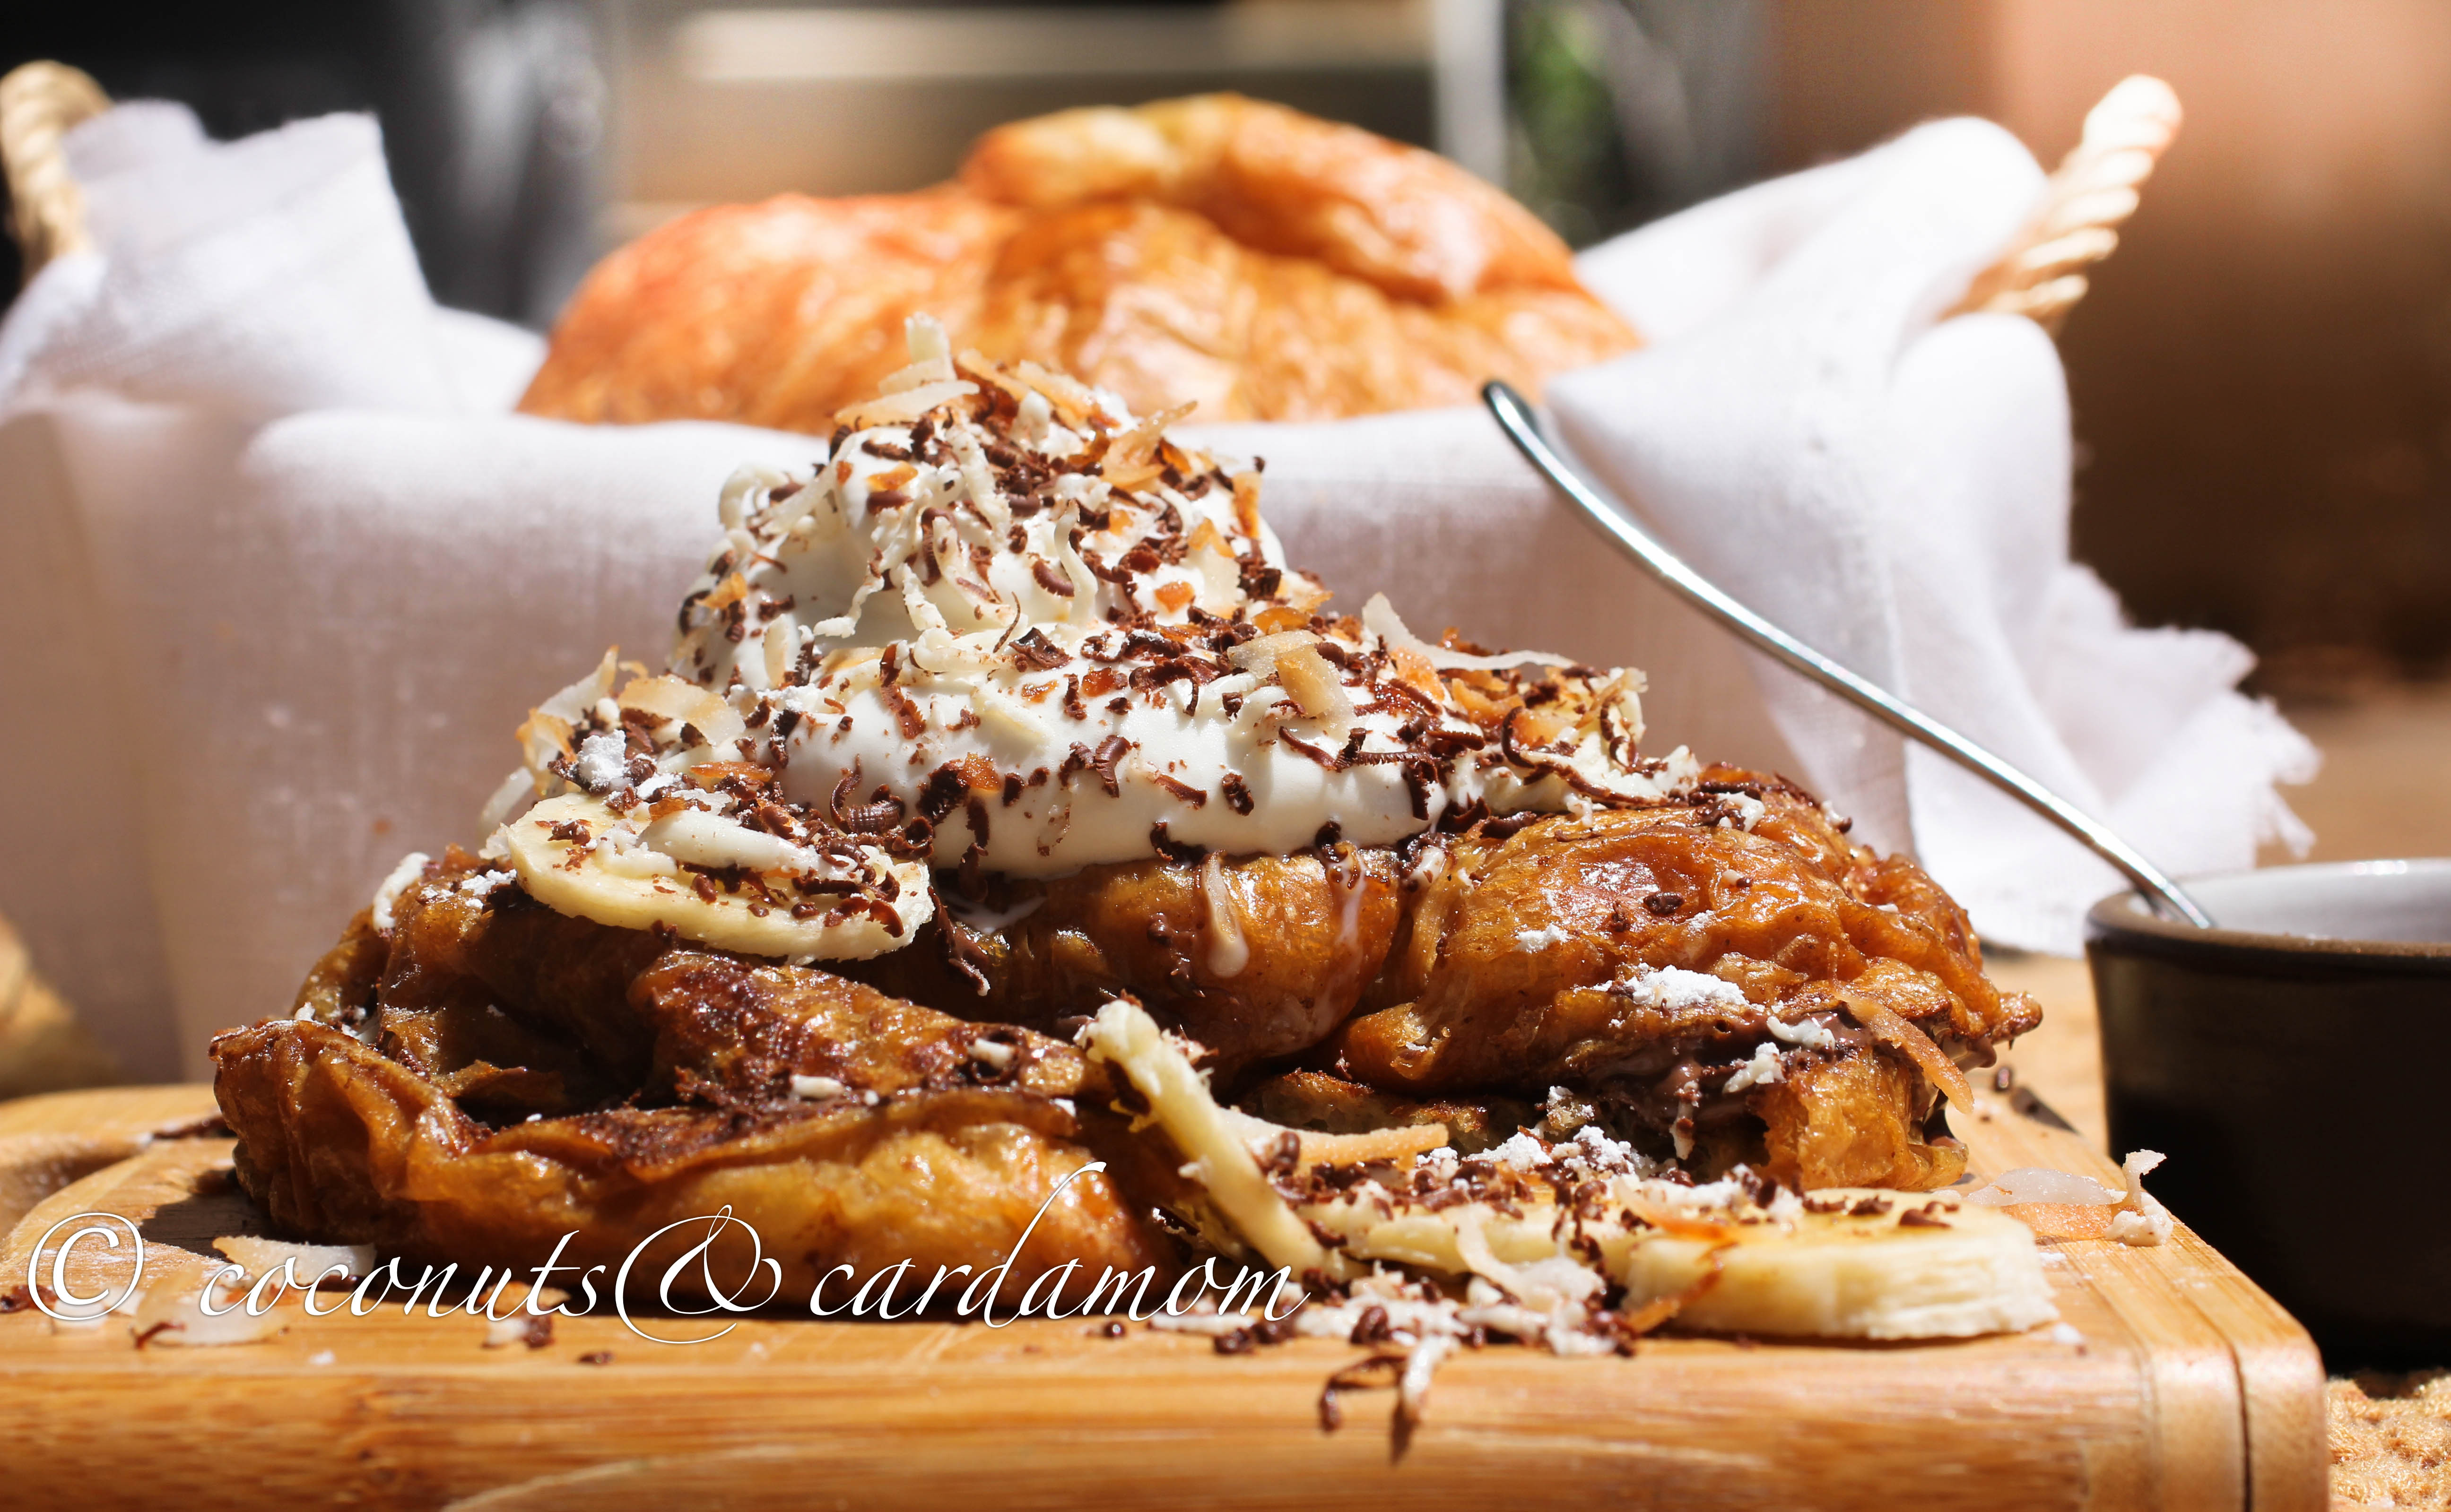 Croissant French Toast Stuffed with Nutella and Topped with Coconut & Banana